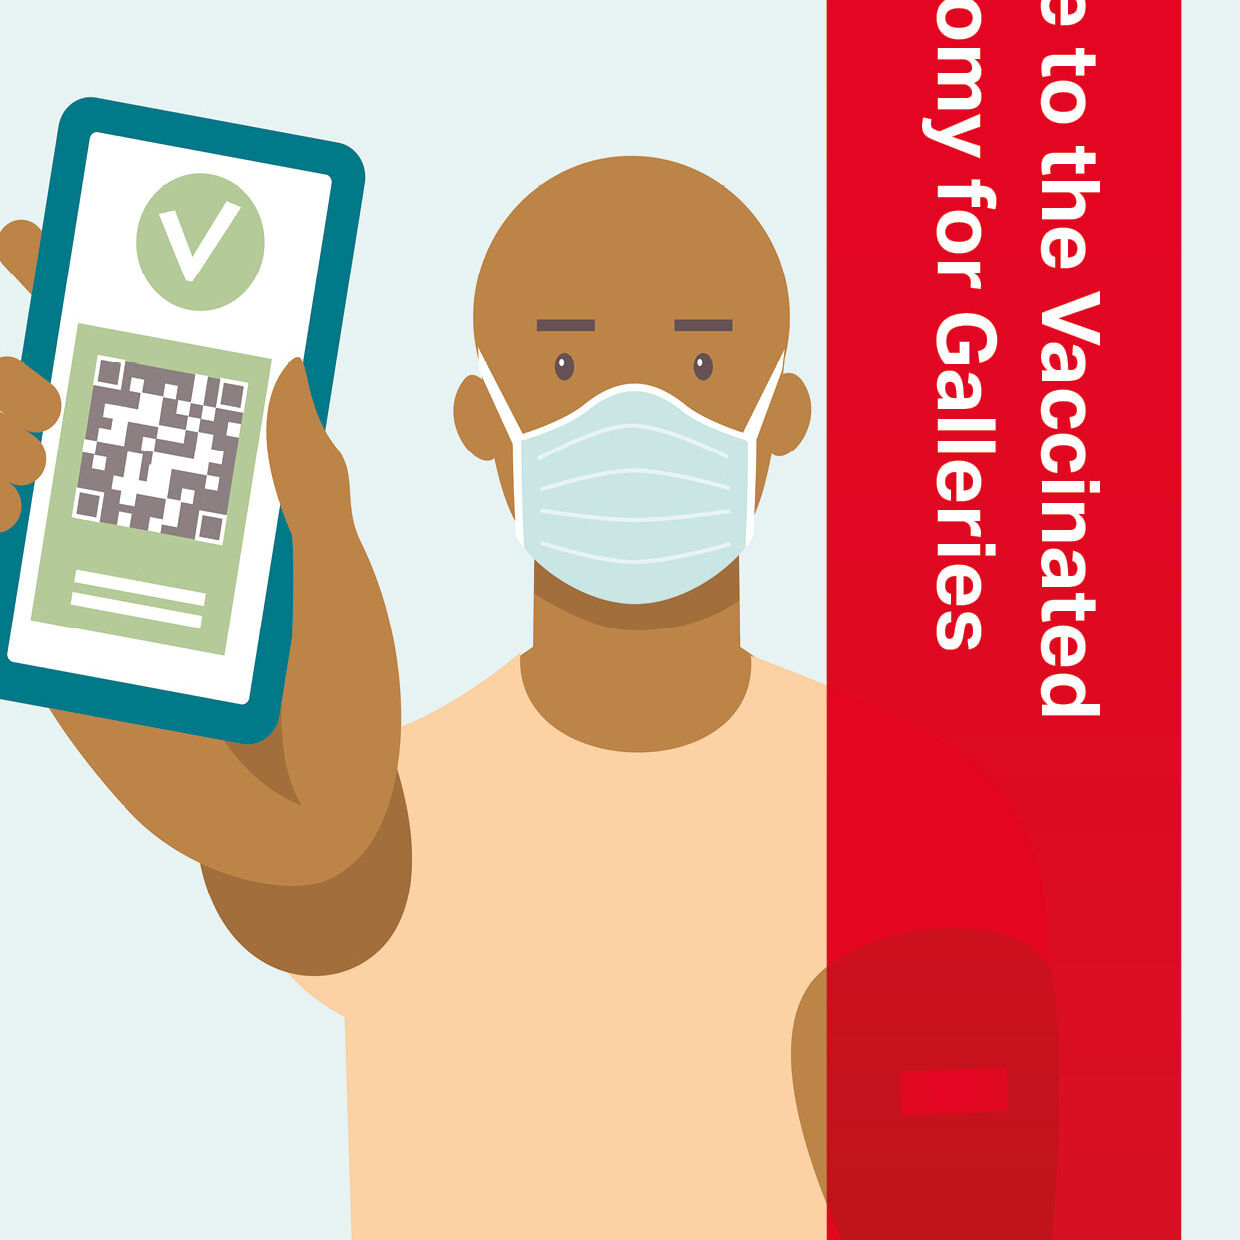 Cover of the PGAV Guide to the Vaccinated Economy for Galleries. Image shows a graphic of a bald man with brown skin wearing a face mask and holding up a mobile phone with a QR code and a green tick indicating he is vaccinated against COVID-19.